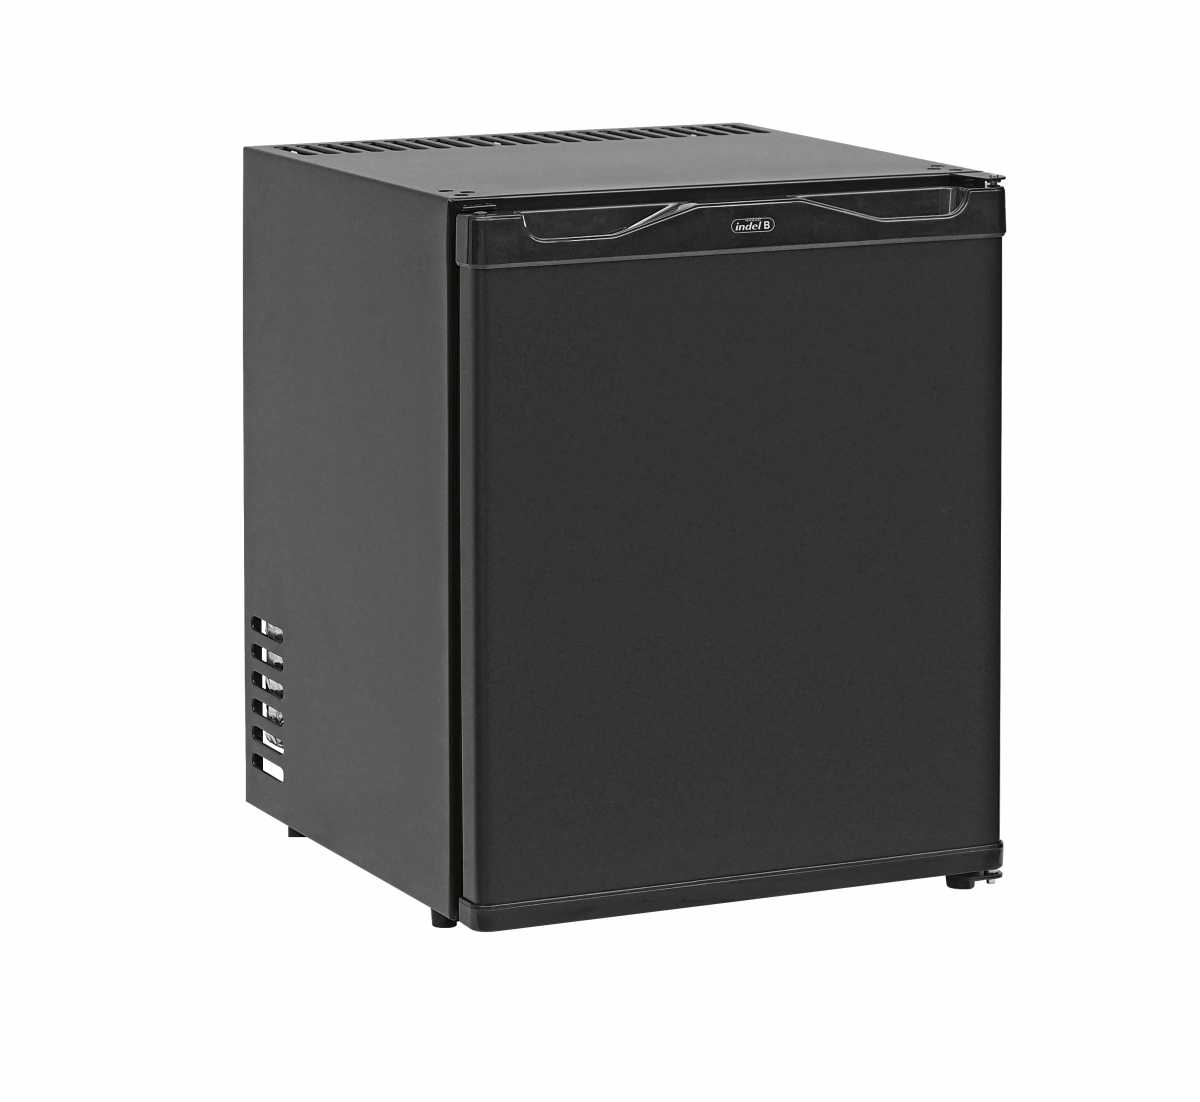 INDEL B Iceberg 30 Plus Minibar